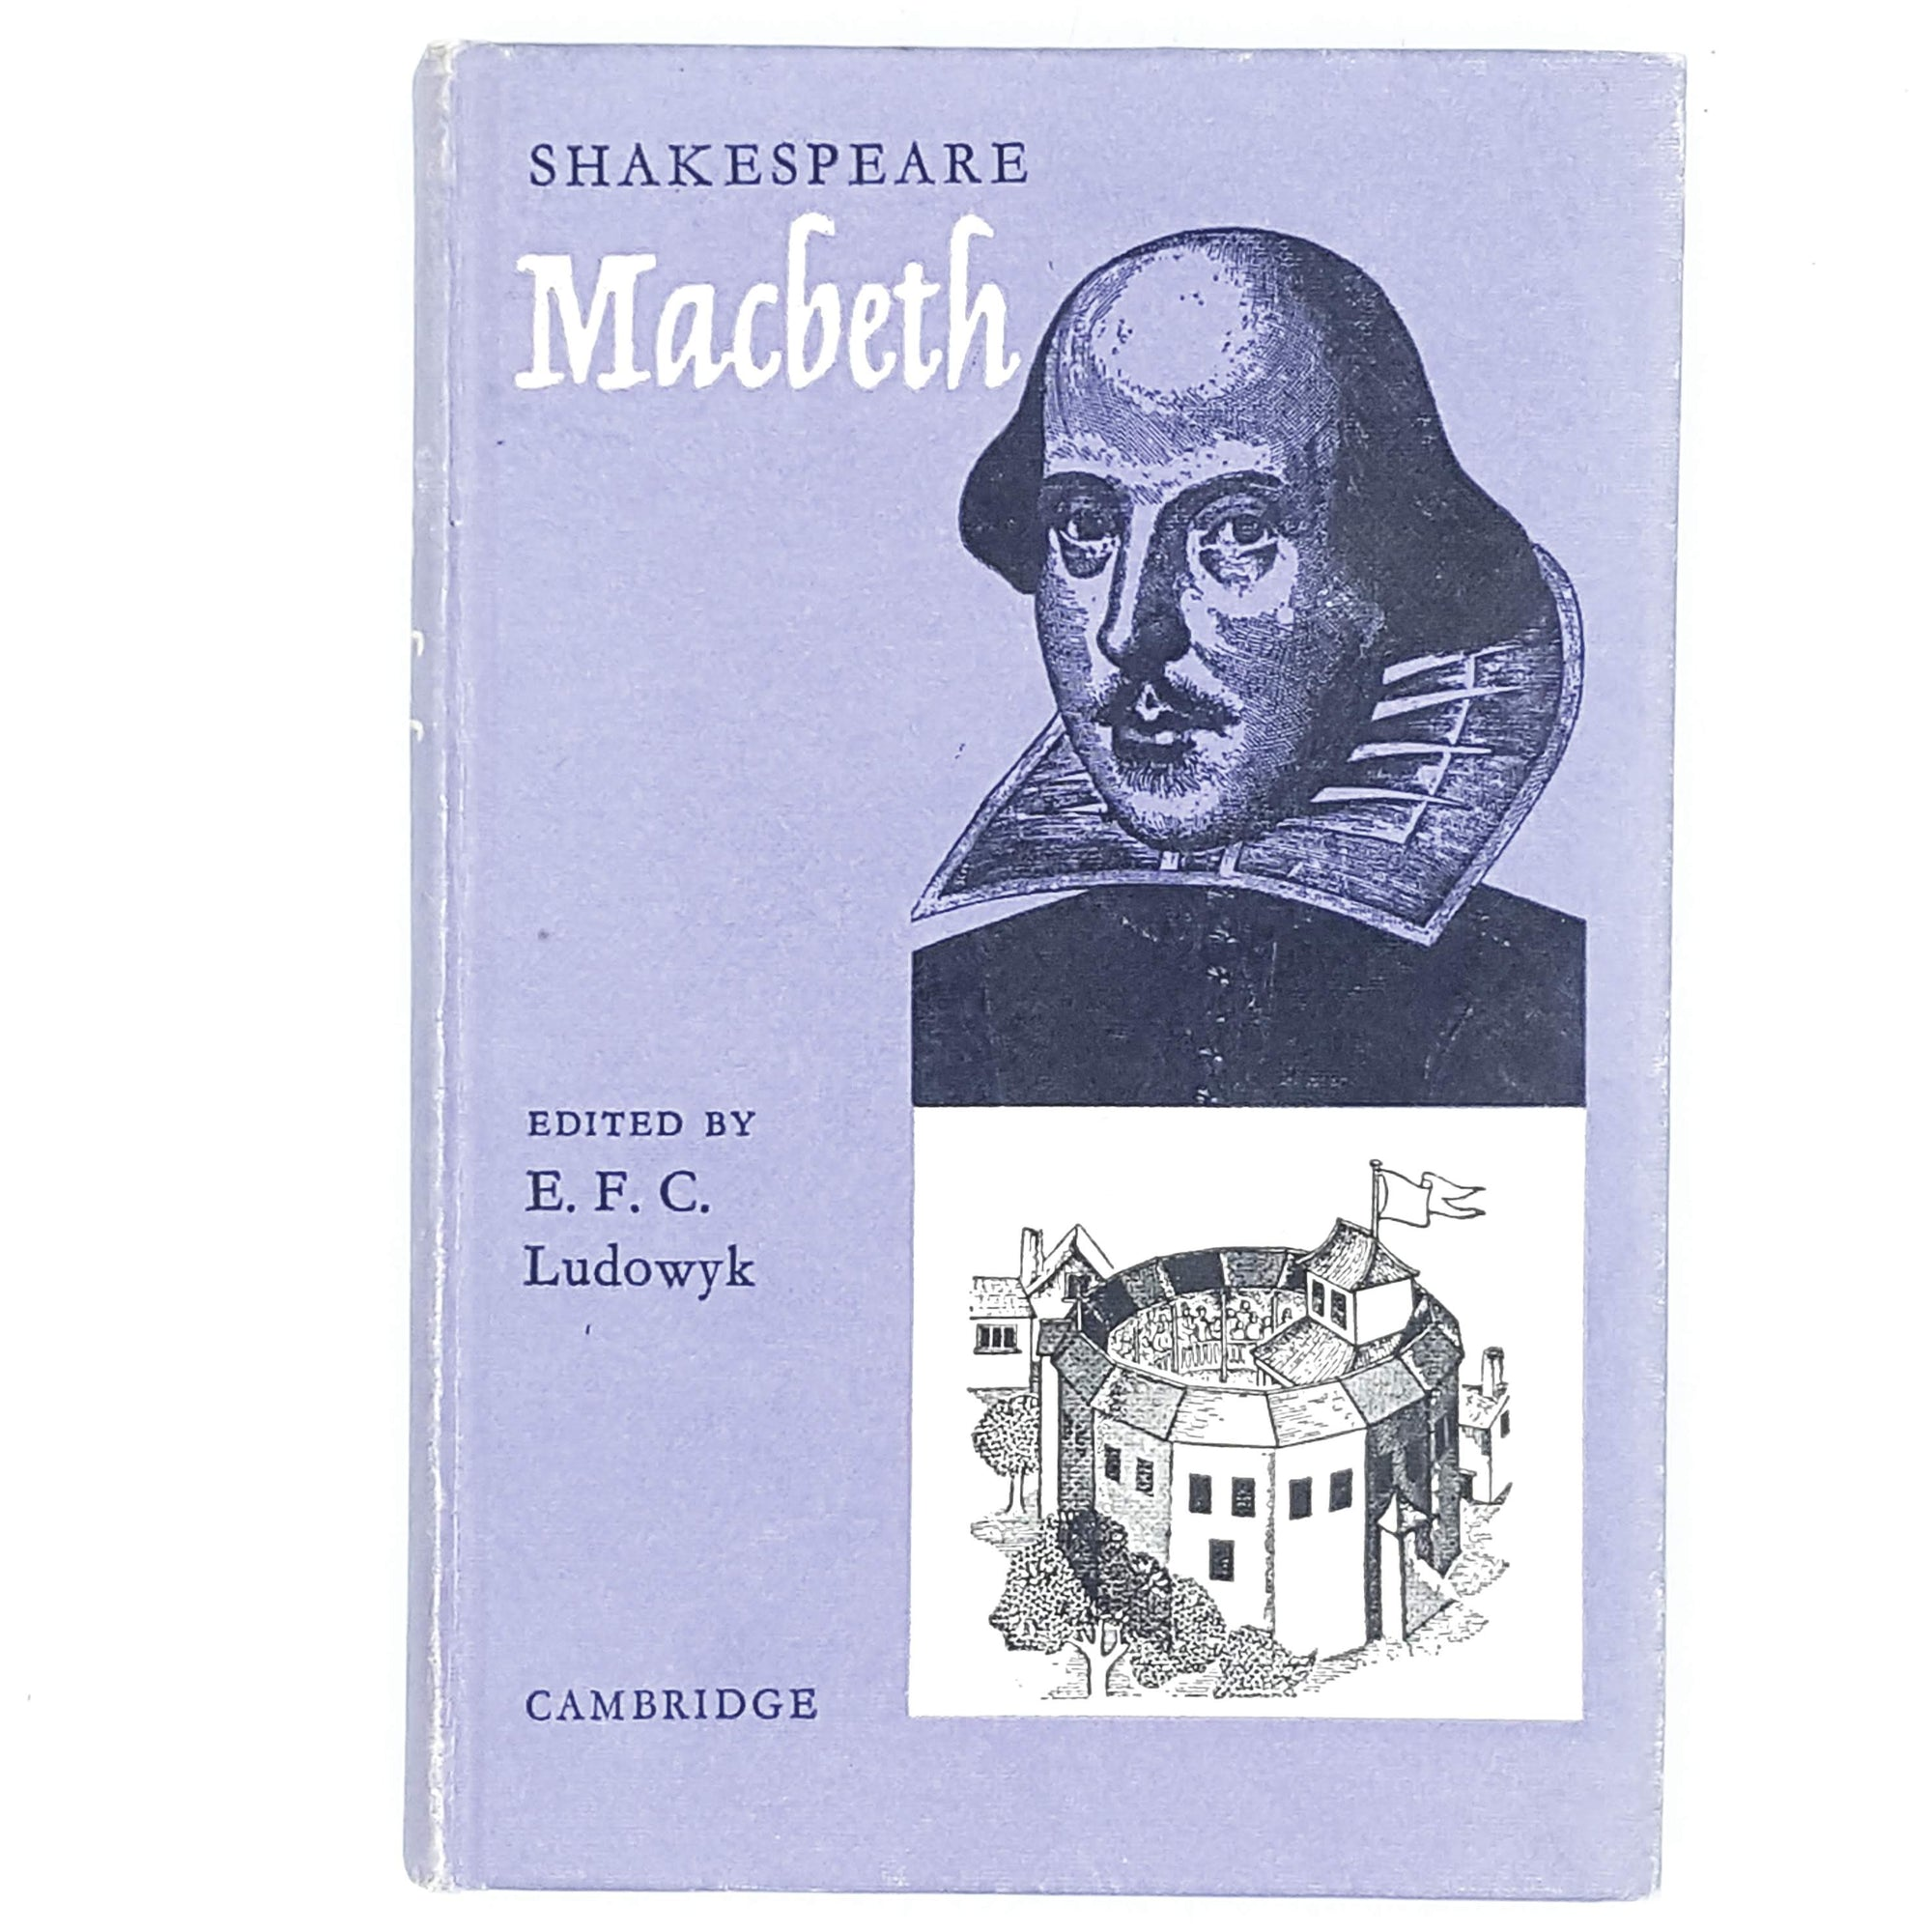 William Shakespeare's Macbeth with notes 1964